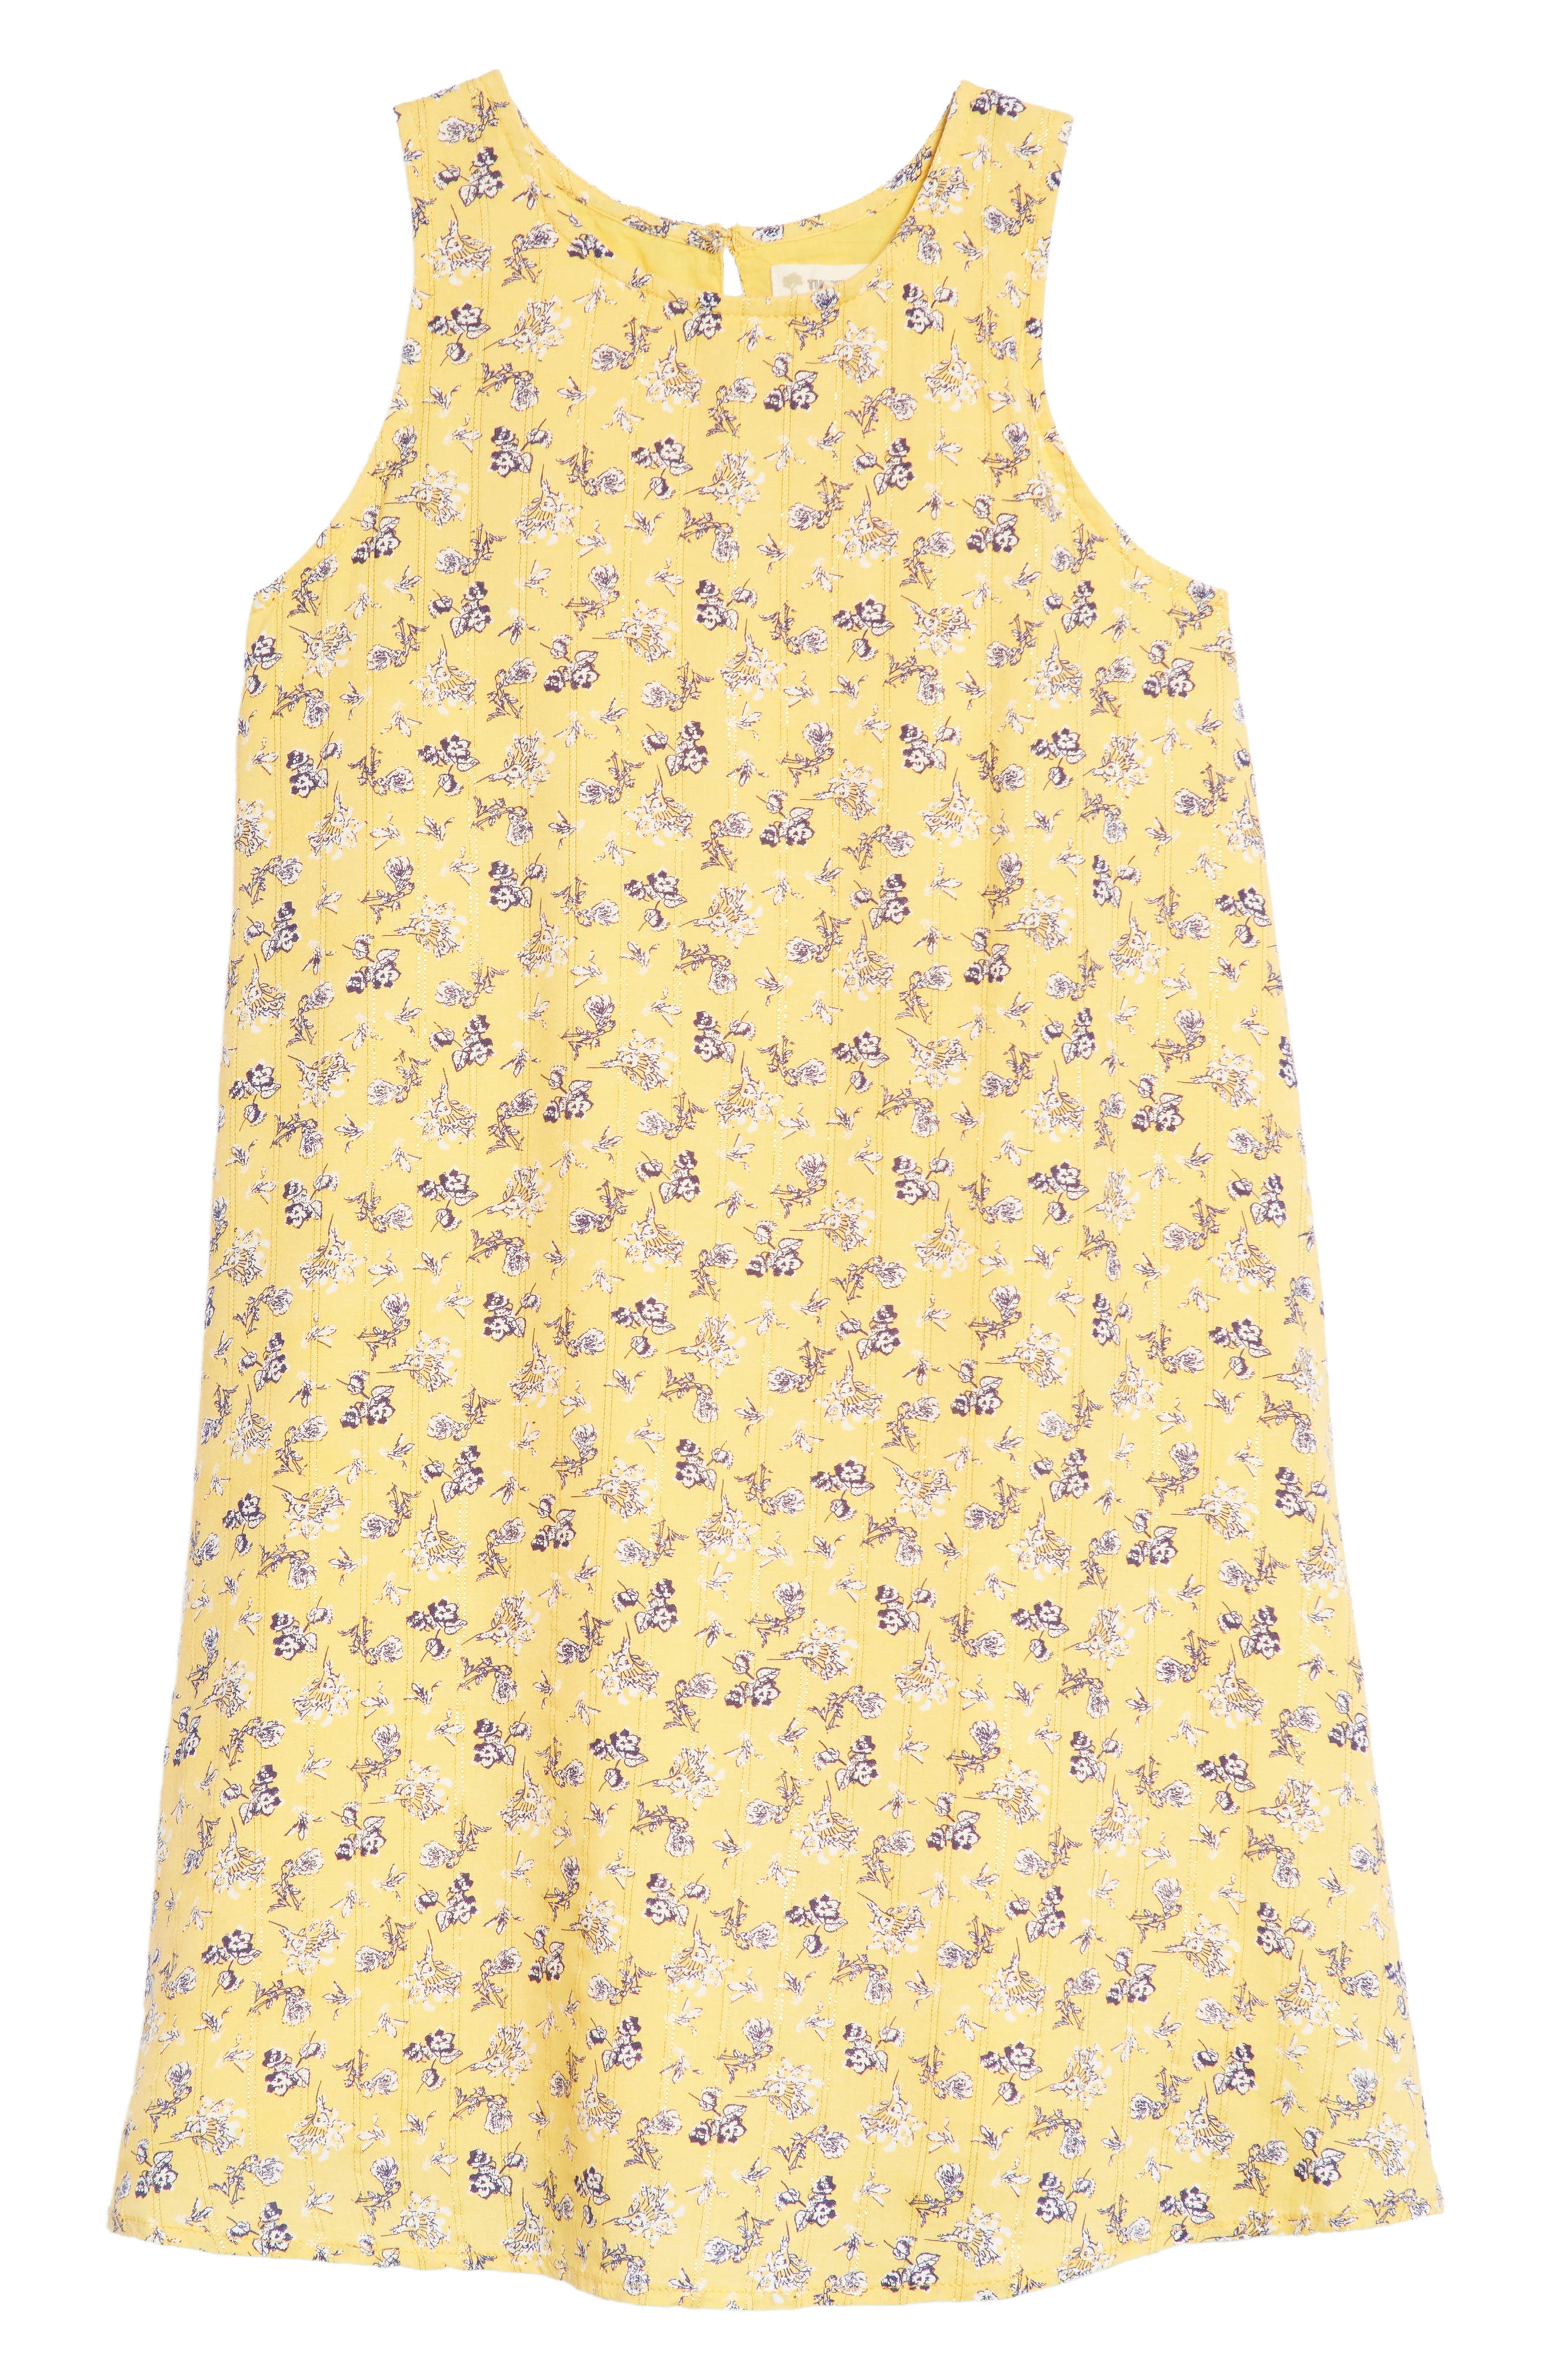 Floral Sleeveless Shift Dress,                             Main thumbnail 1, color,                             Yellow Sunset Spring Blooms